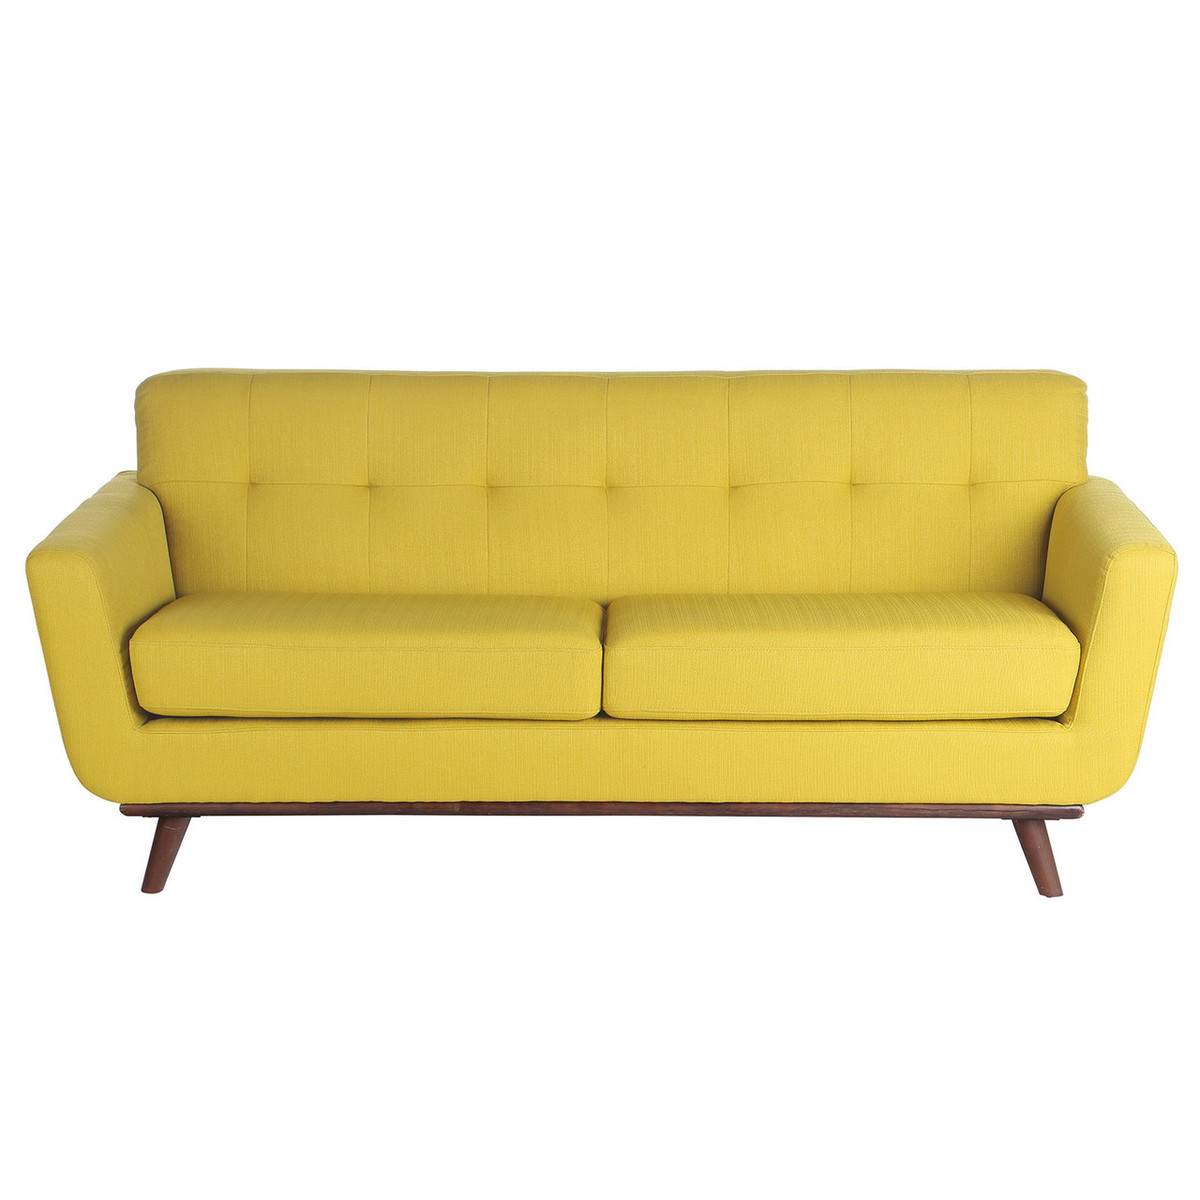 Wohndesign Software: Retro 3 Seater Sofa In Yellow